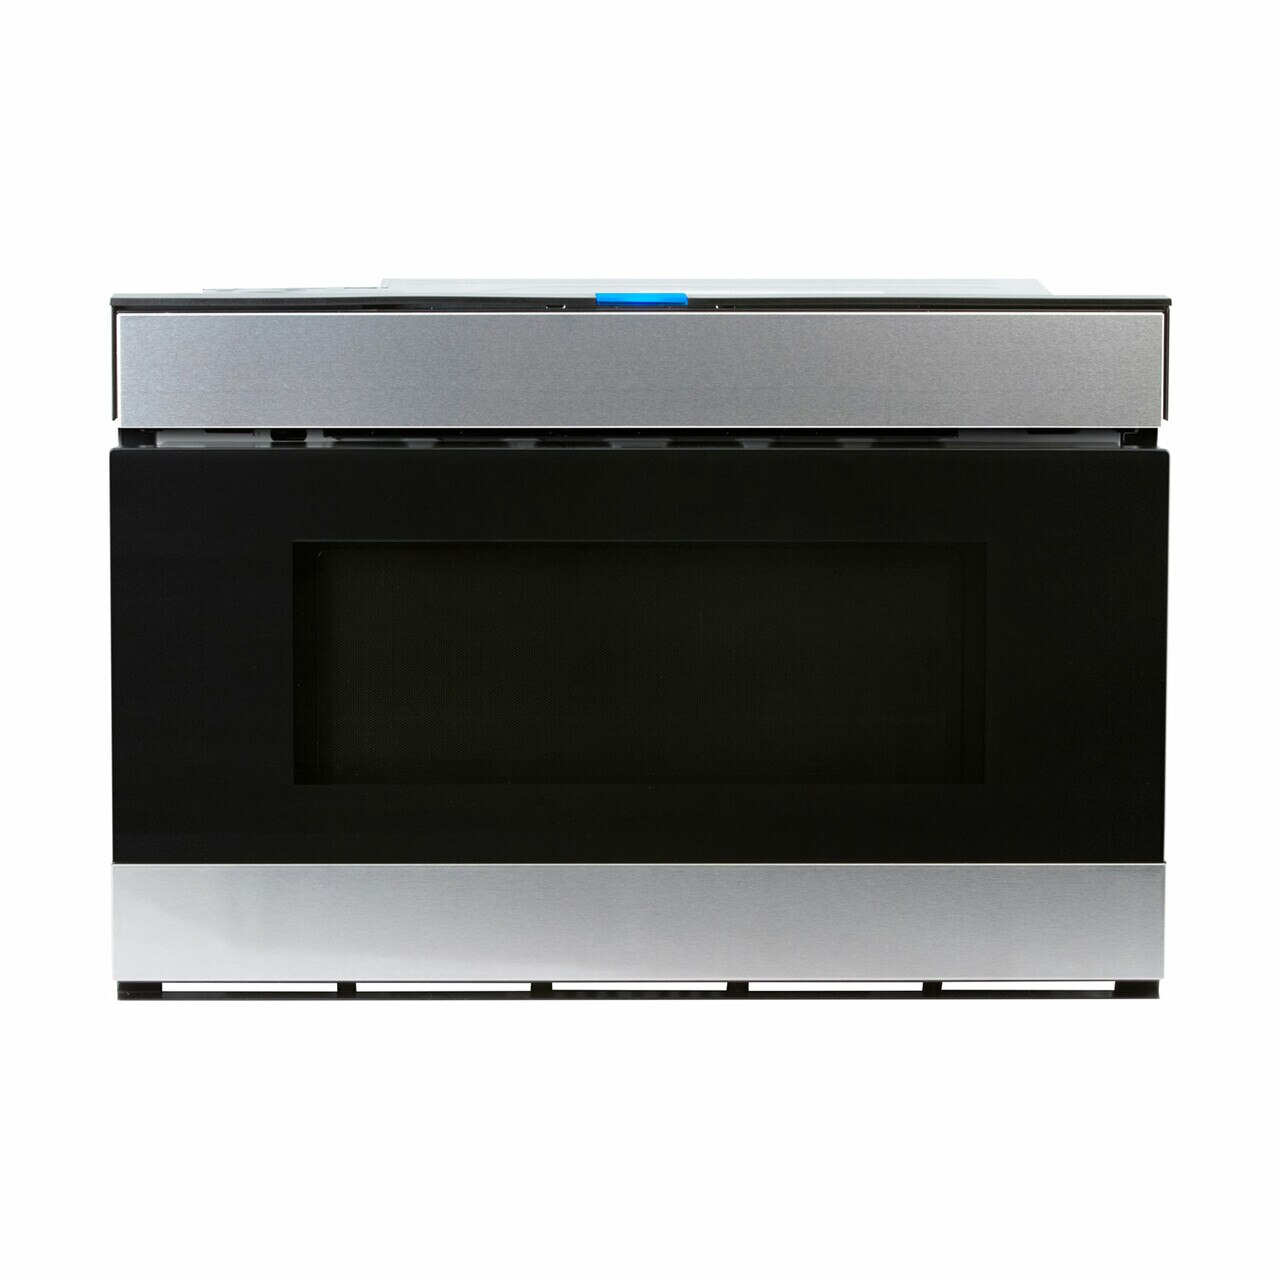 Sharp Easy Wave Open Microwave Drawer (SMD2480CS)